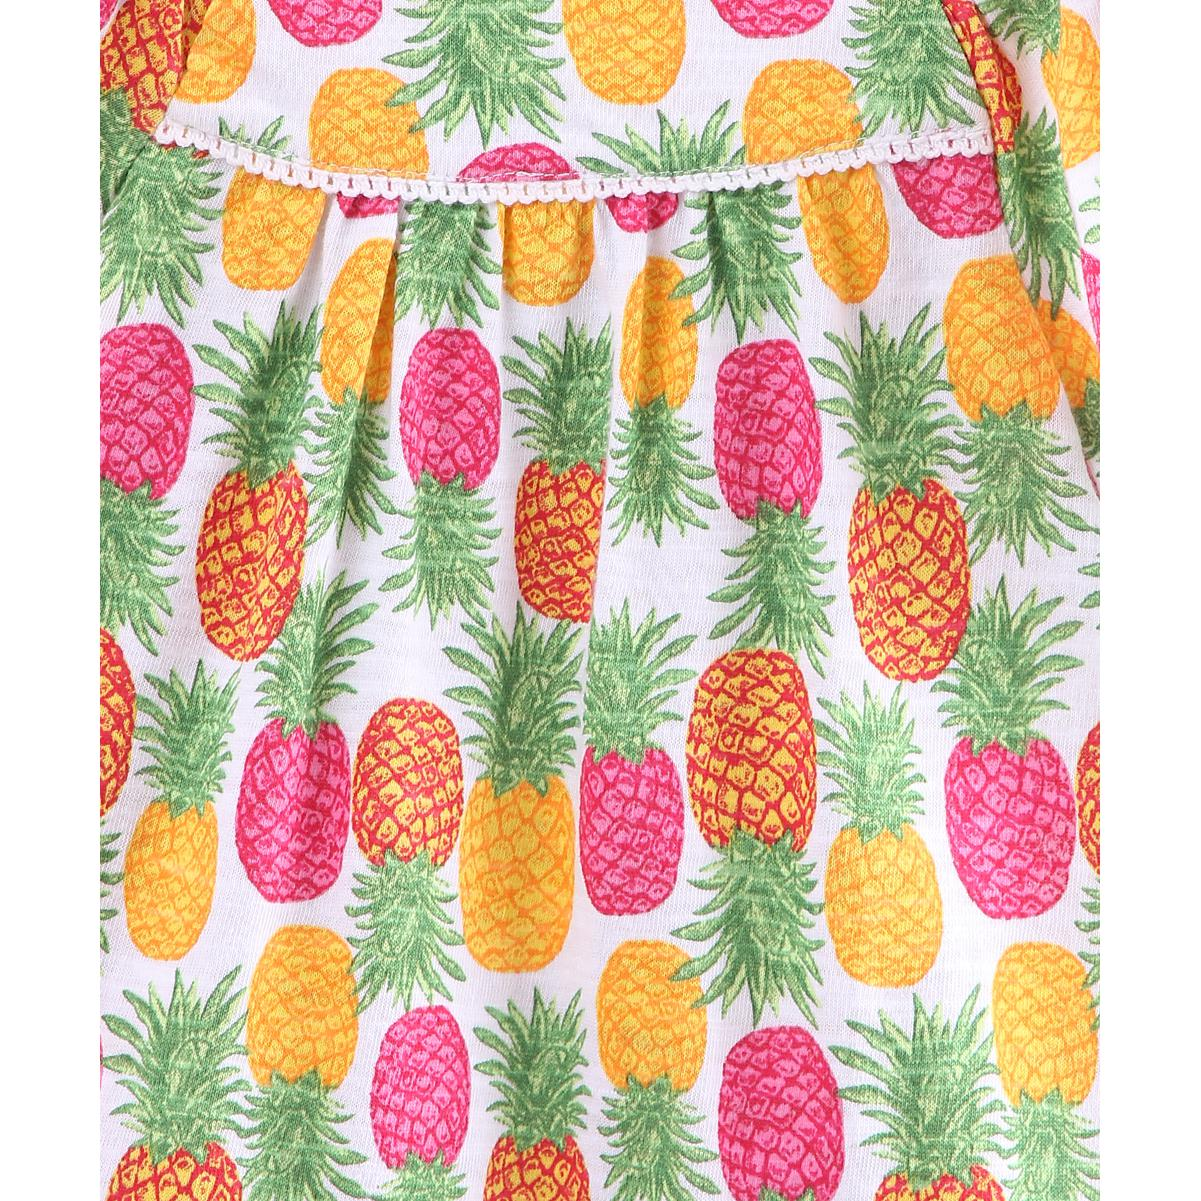 Beebay - Multi Colored Pineapple Print Cotton Dress For Girls